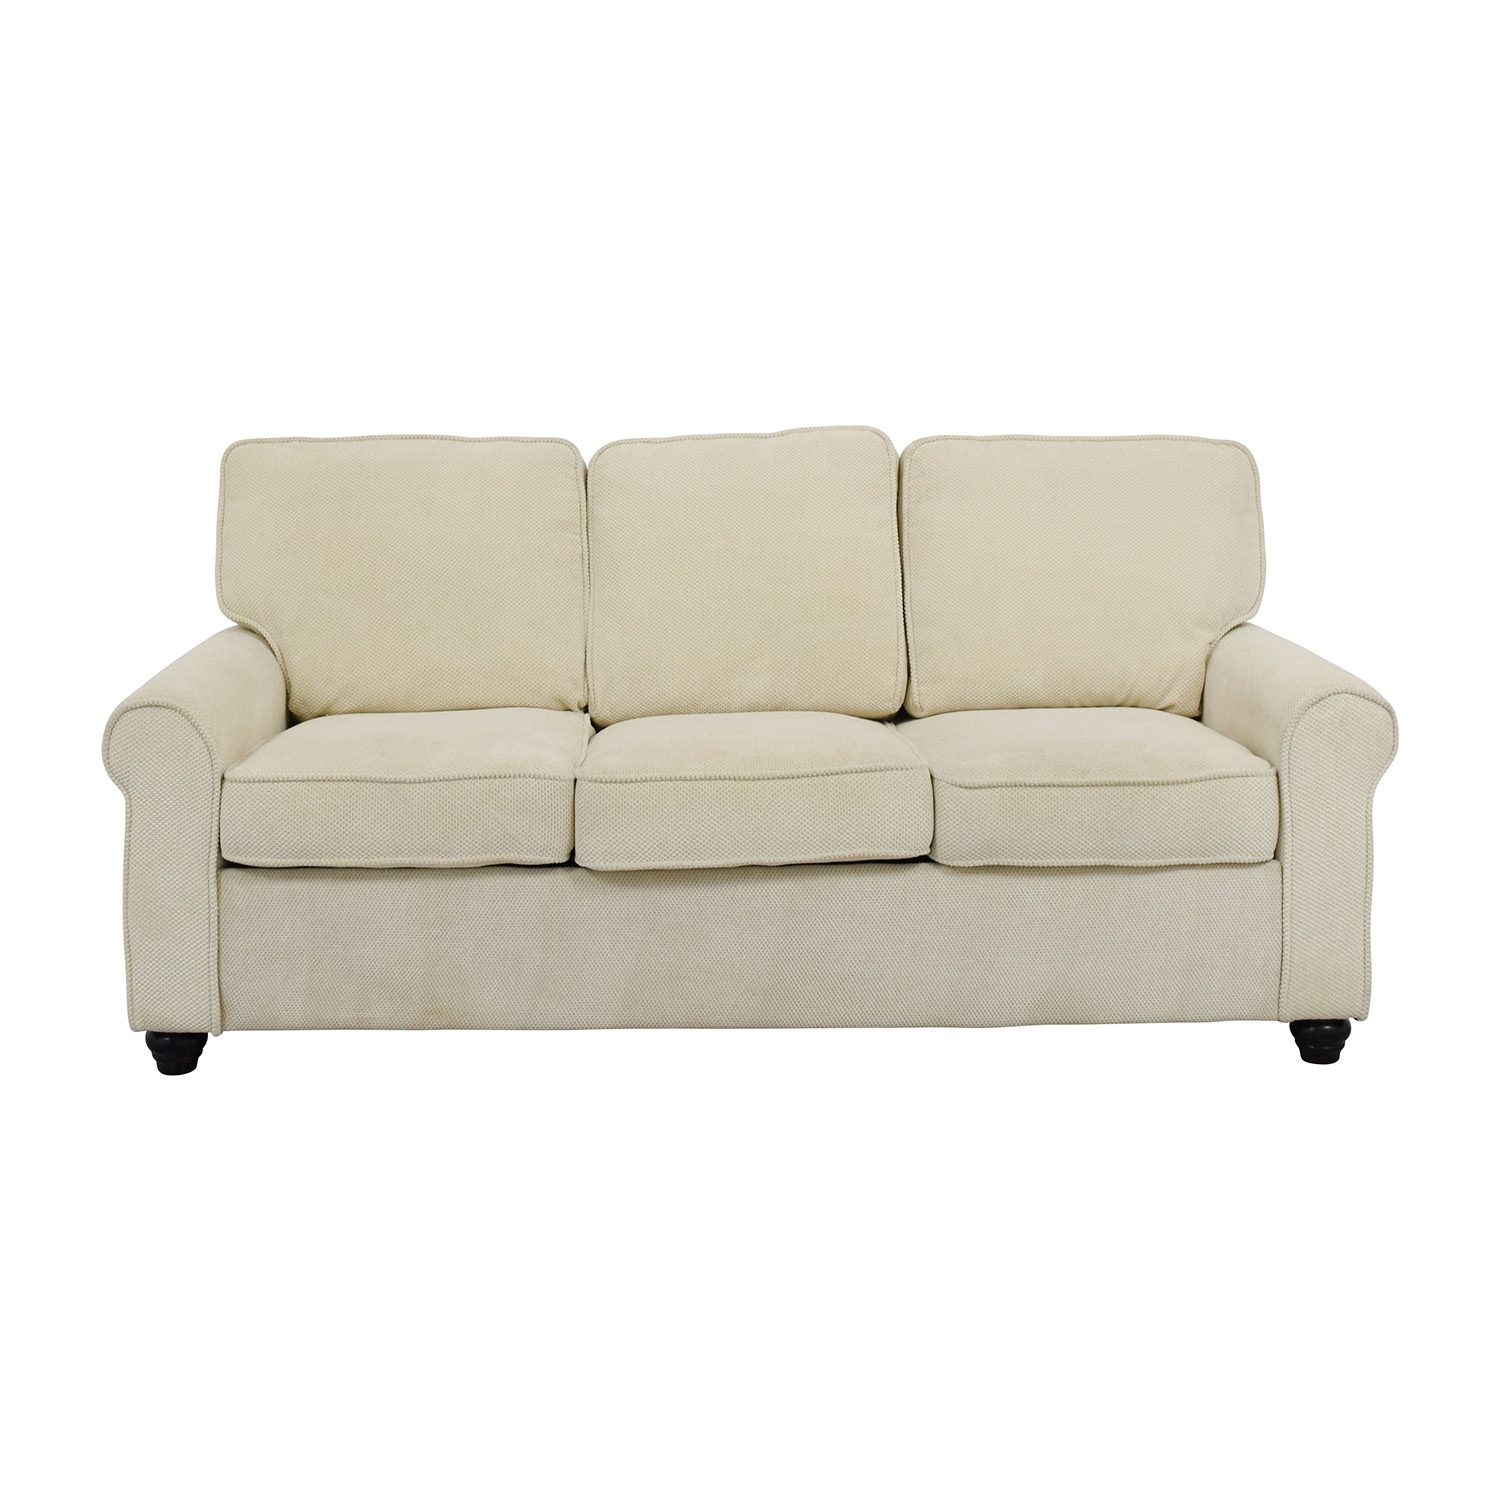 Tremendous 83 Off Bradford Beige Three Cushion Sofa Sofas Machost Co Dining Chair Design Ideas Machostcouk